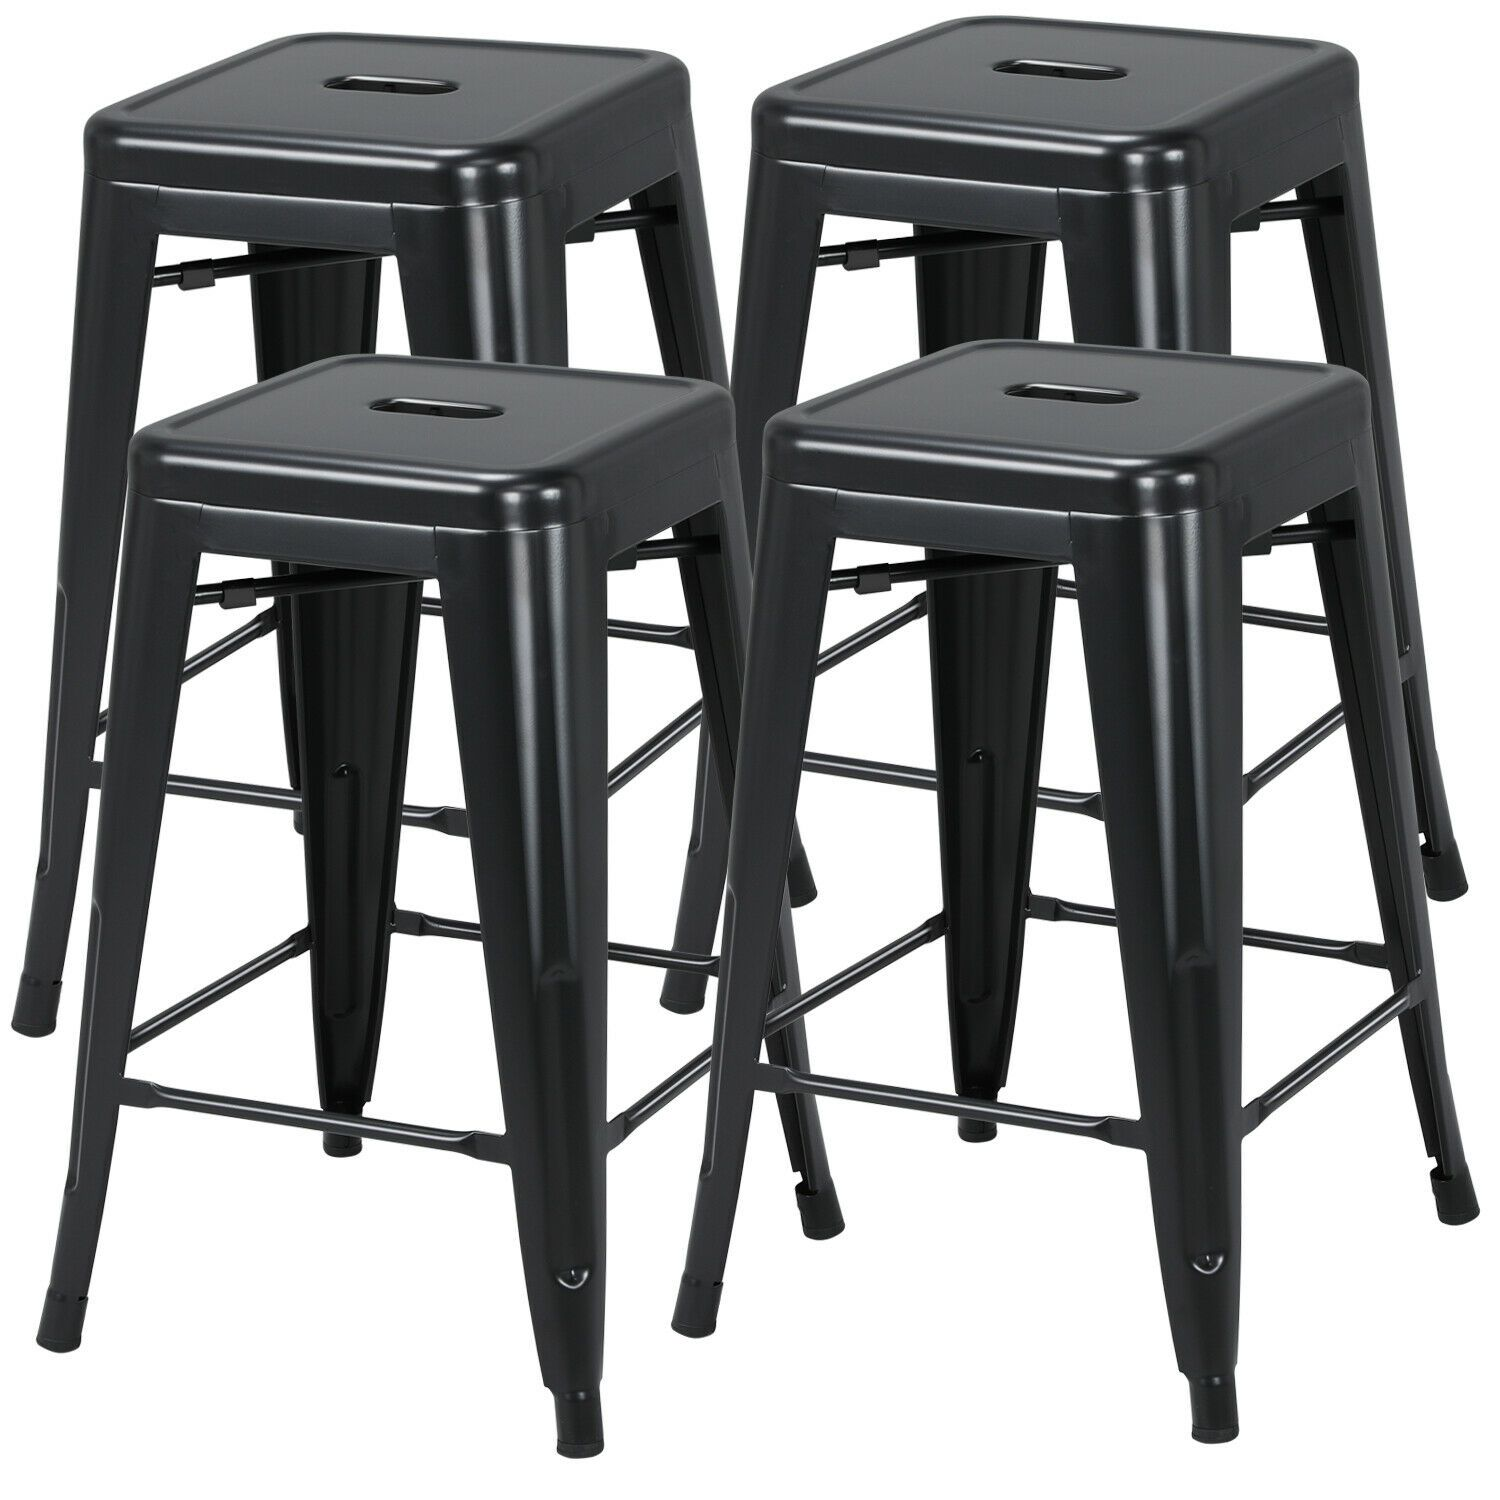 24 Metal Bar Stools Set Of 4 Backless Stackable Counter Height